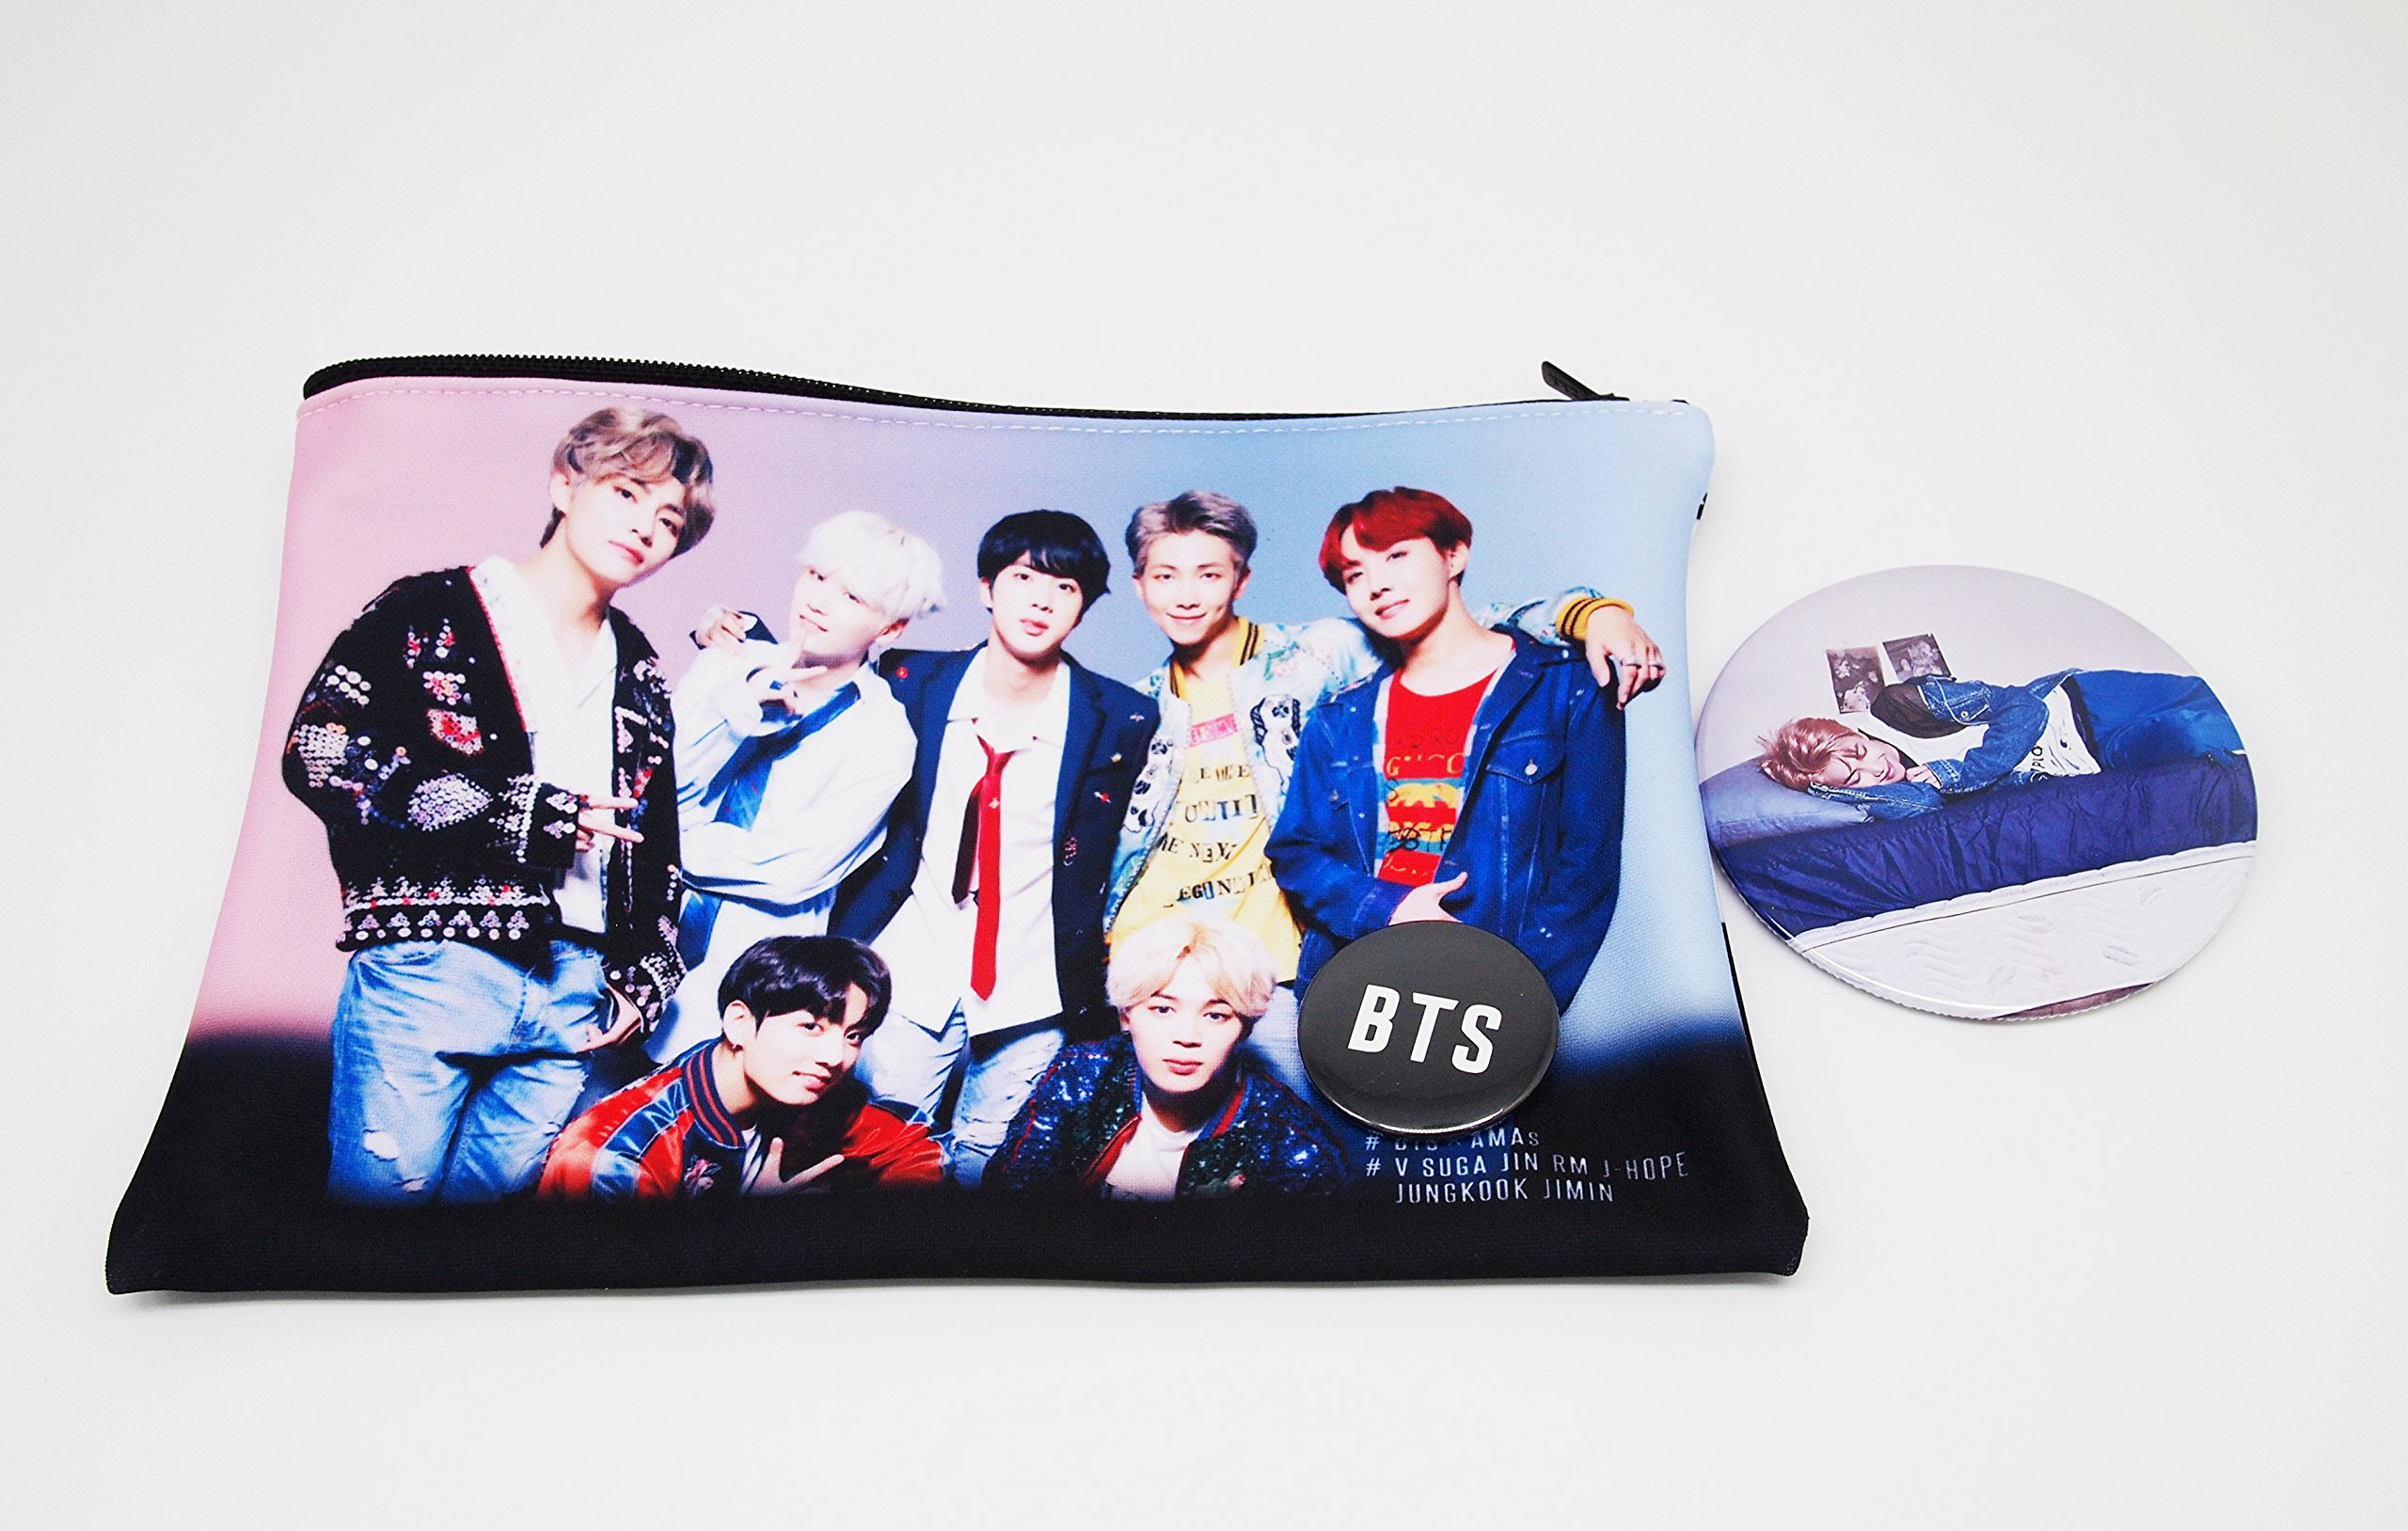 BTS Bangtan Boys - Pouch Pencil Case,Cosmetic Bags + BTS Rogo Pin Button + BTS Photo Pin Button (BTS Group1)